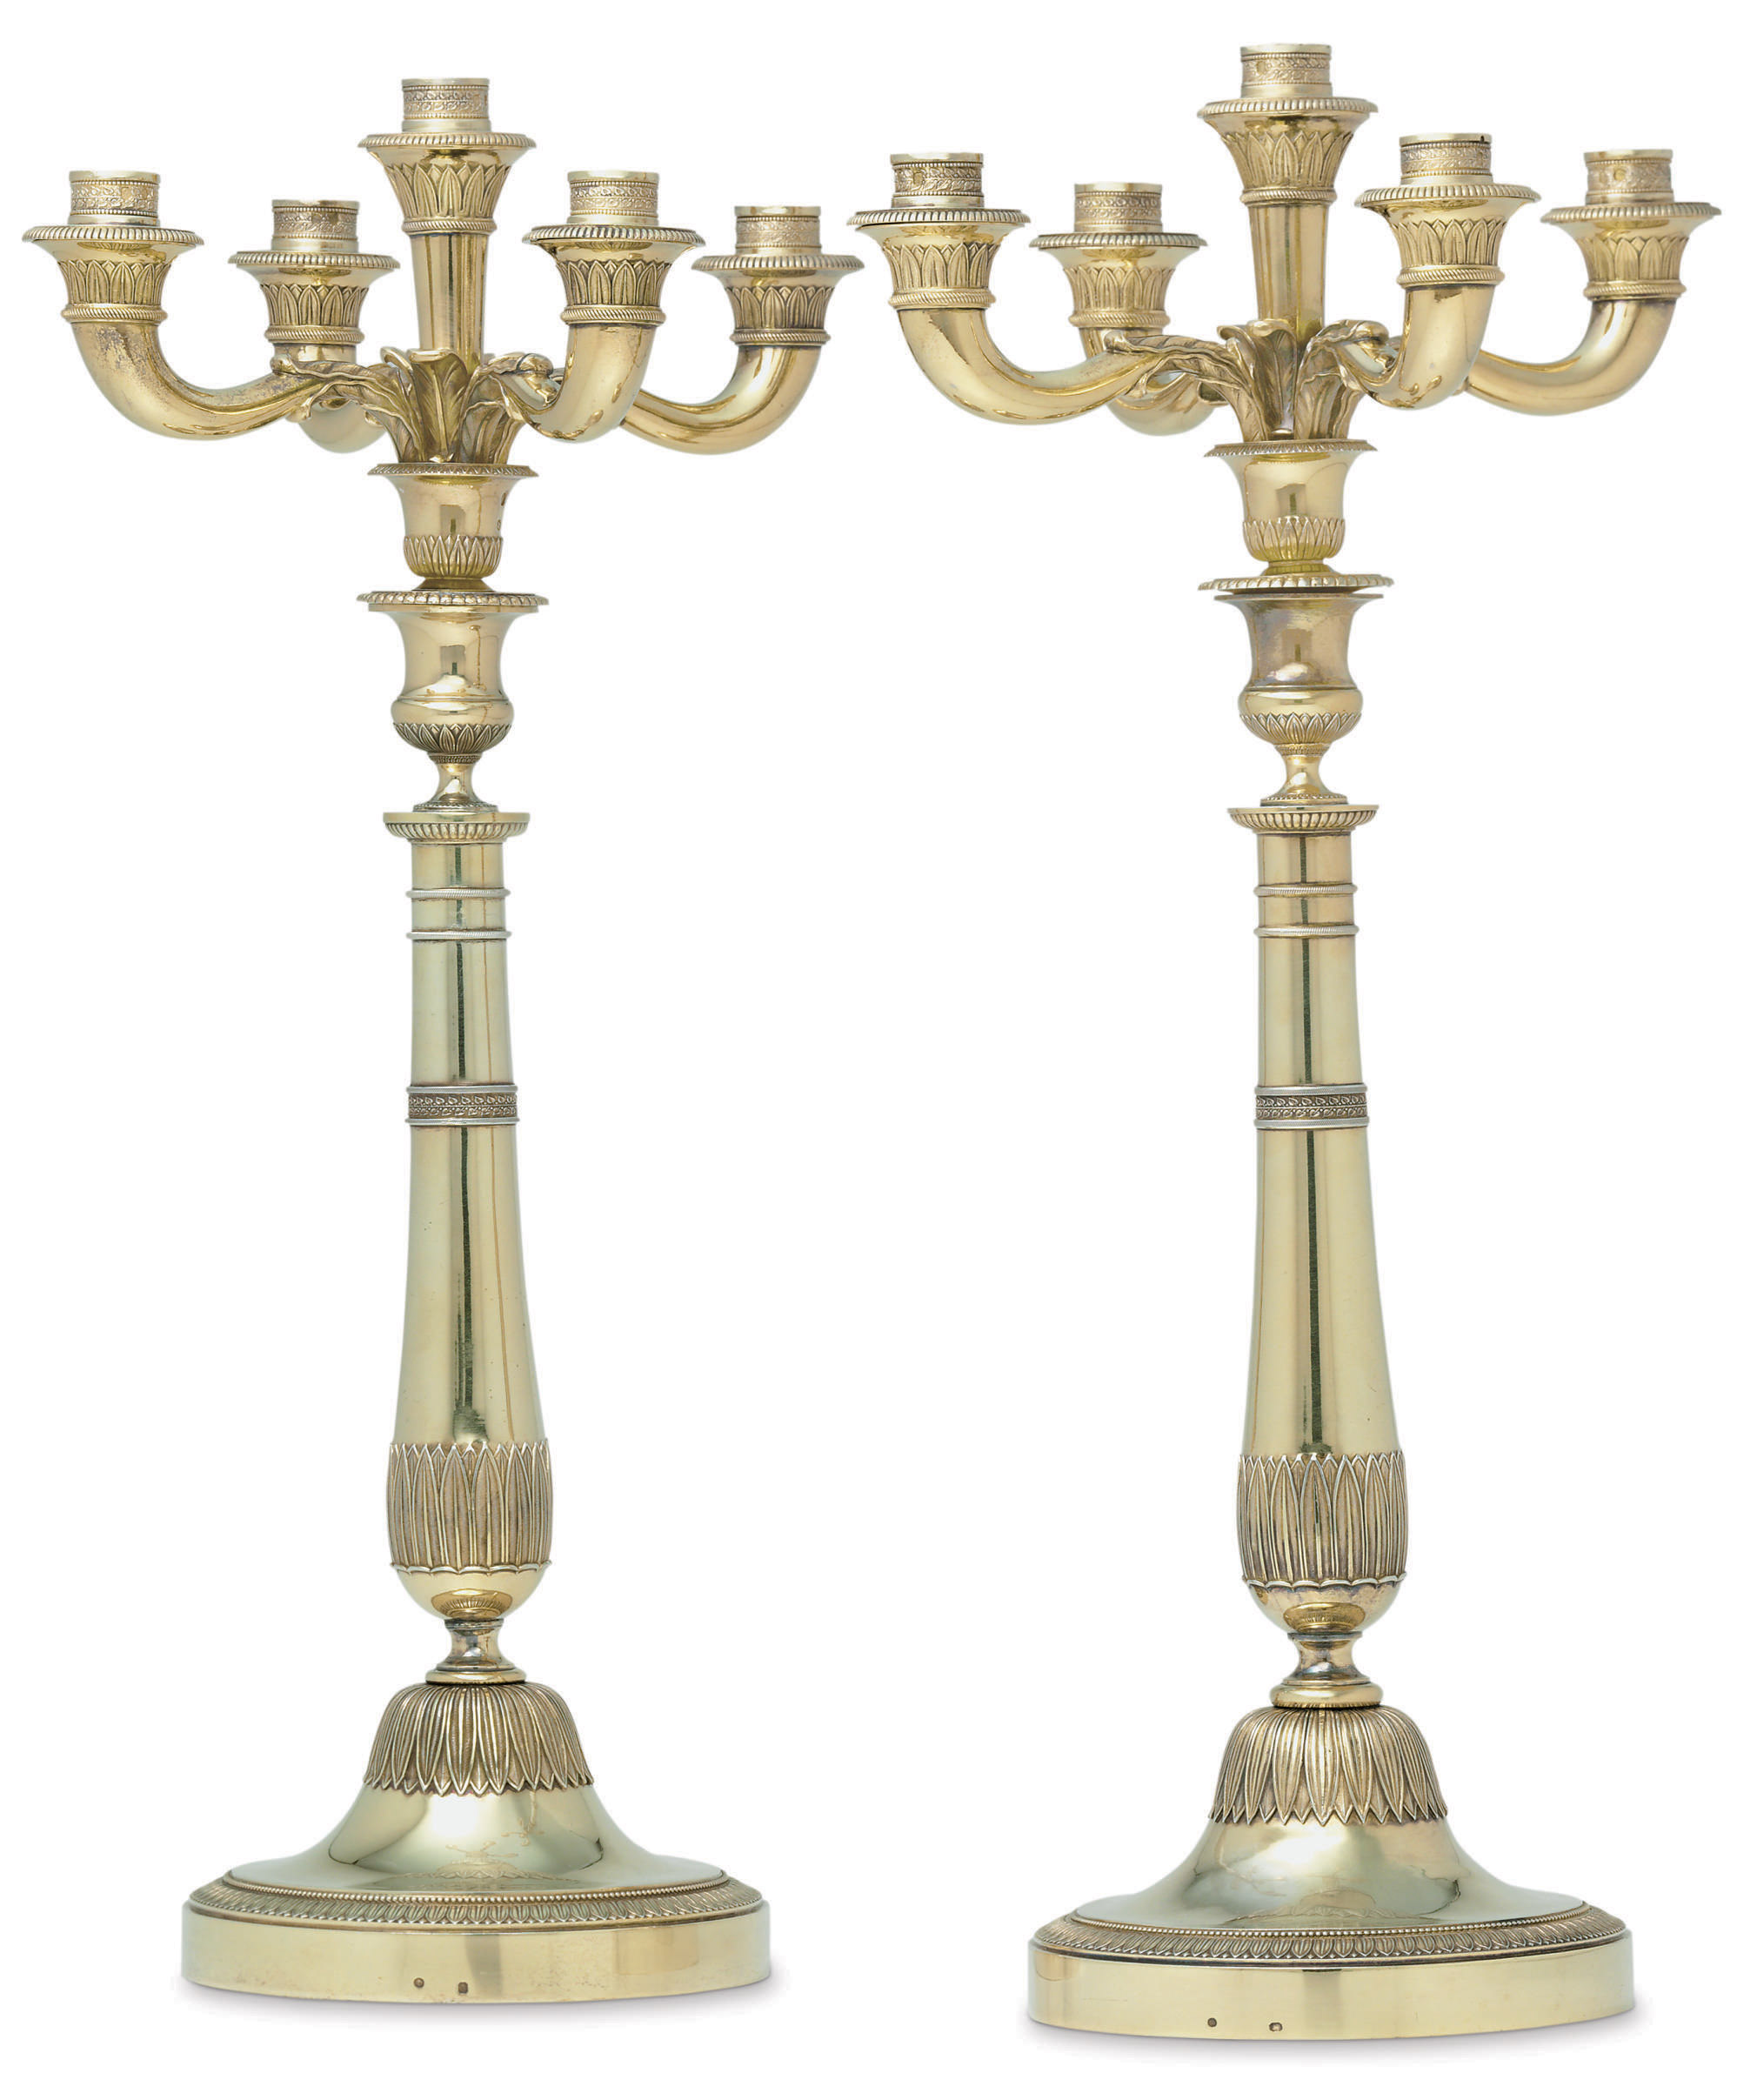 A PAIR OF FRENCH SILVER-GILT FIVE-LIGHT CANDELABRA